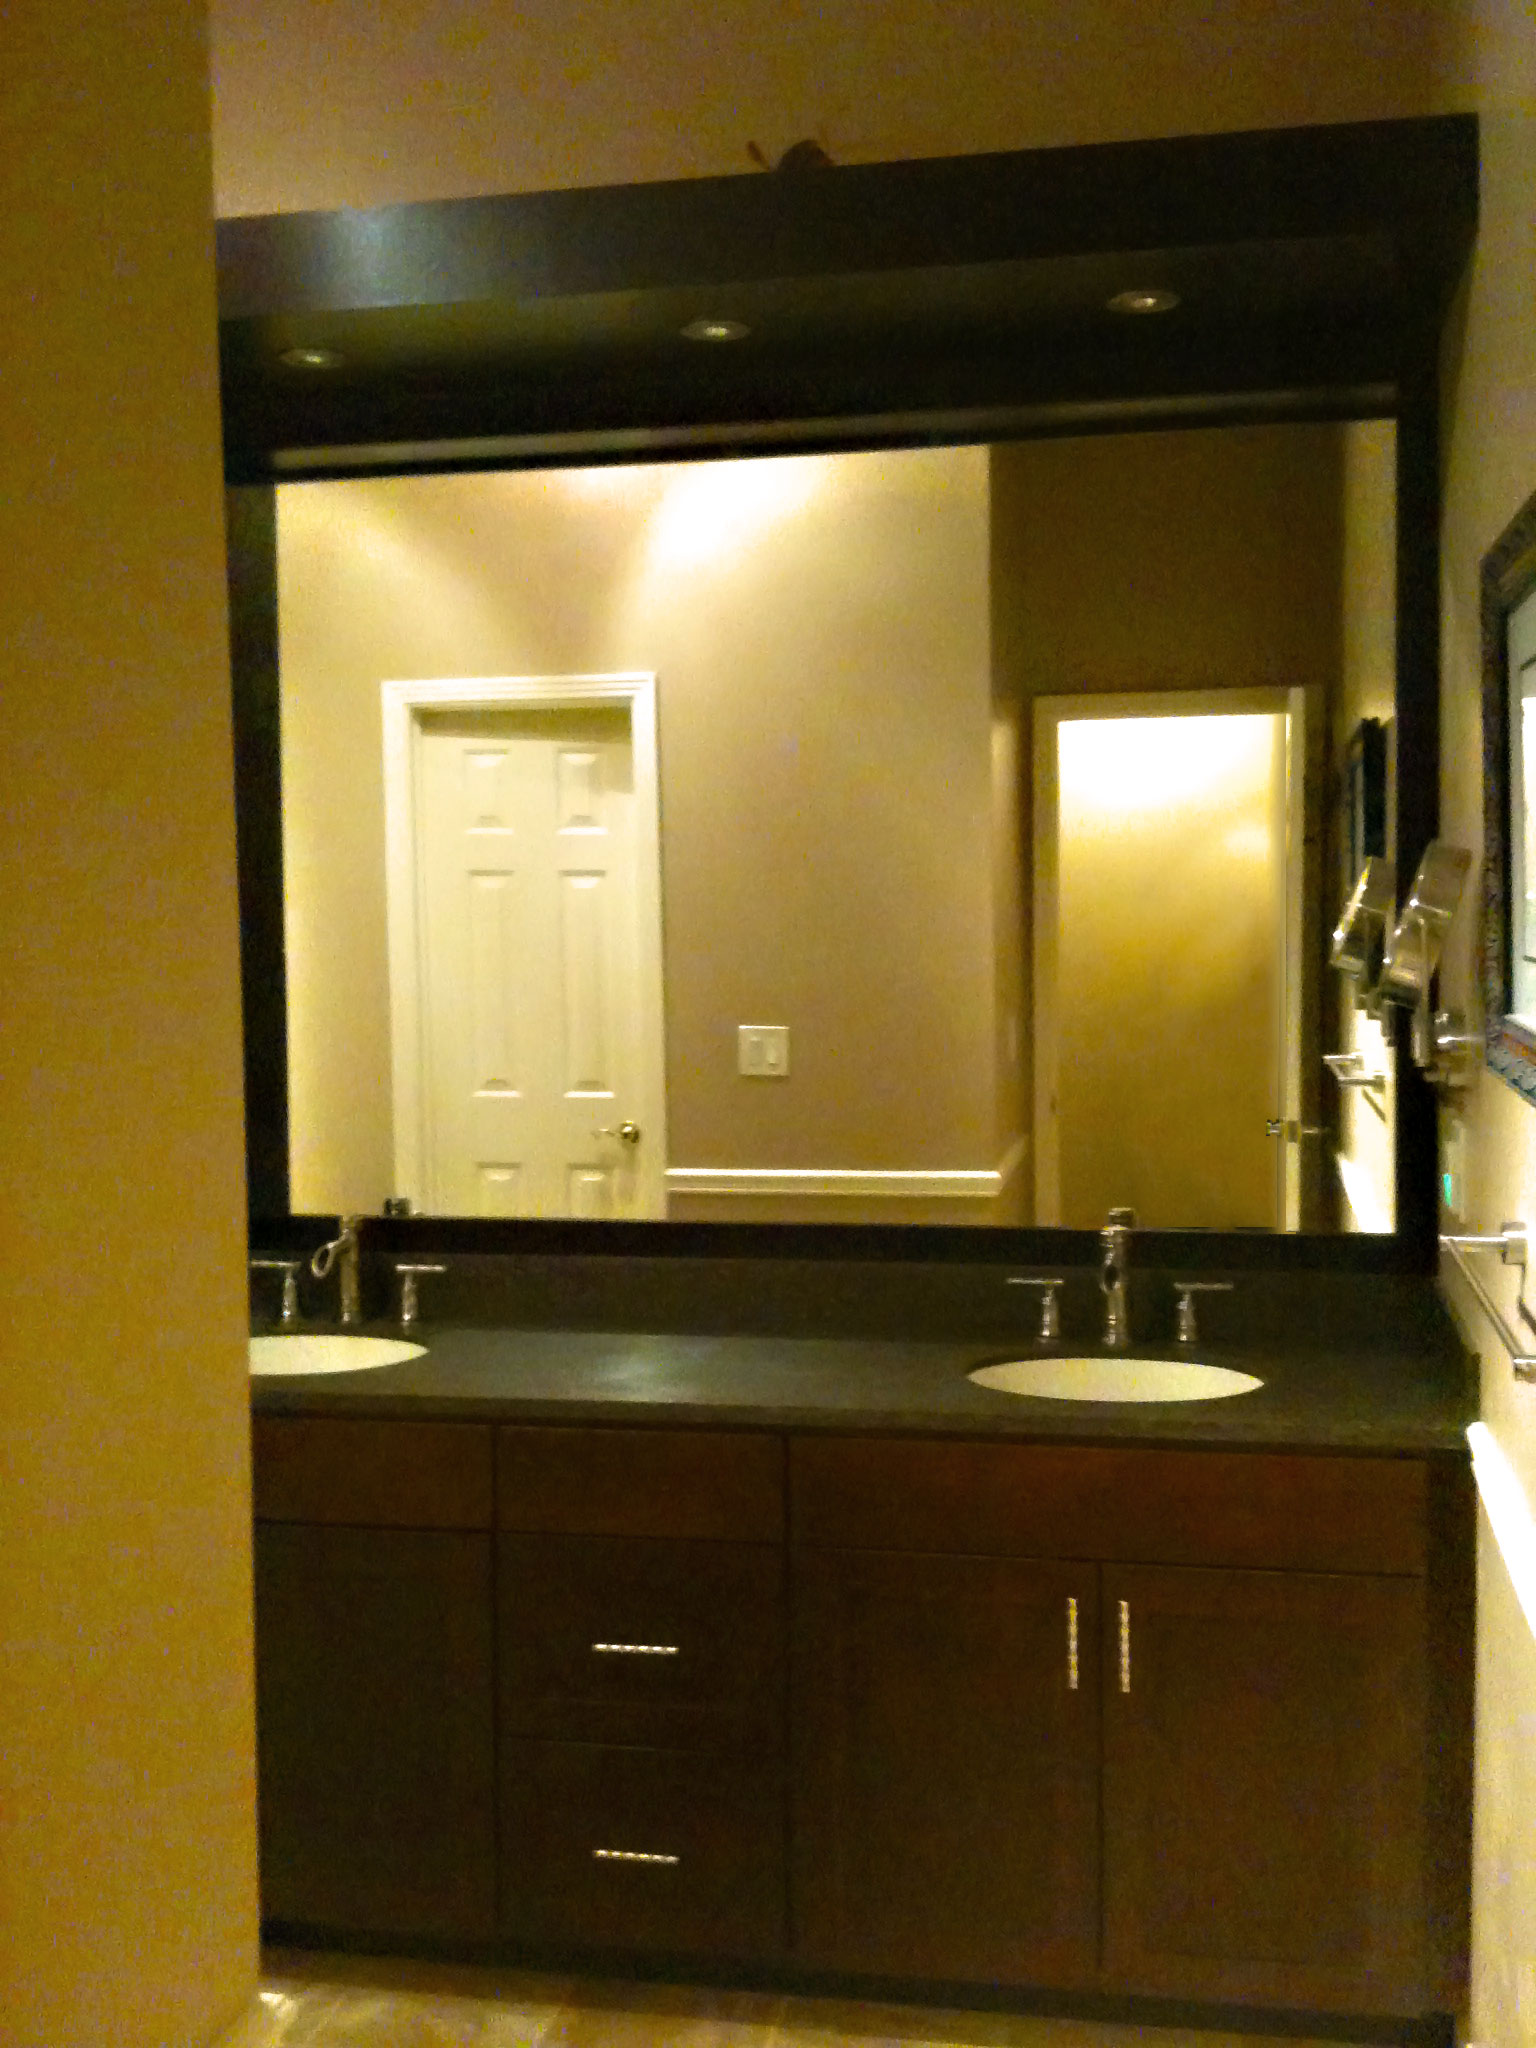 Custom Bathroom Cabinetry & Vanity - Craftworks Custom Cabinetry - Rochester, NY